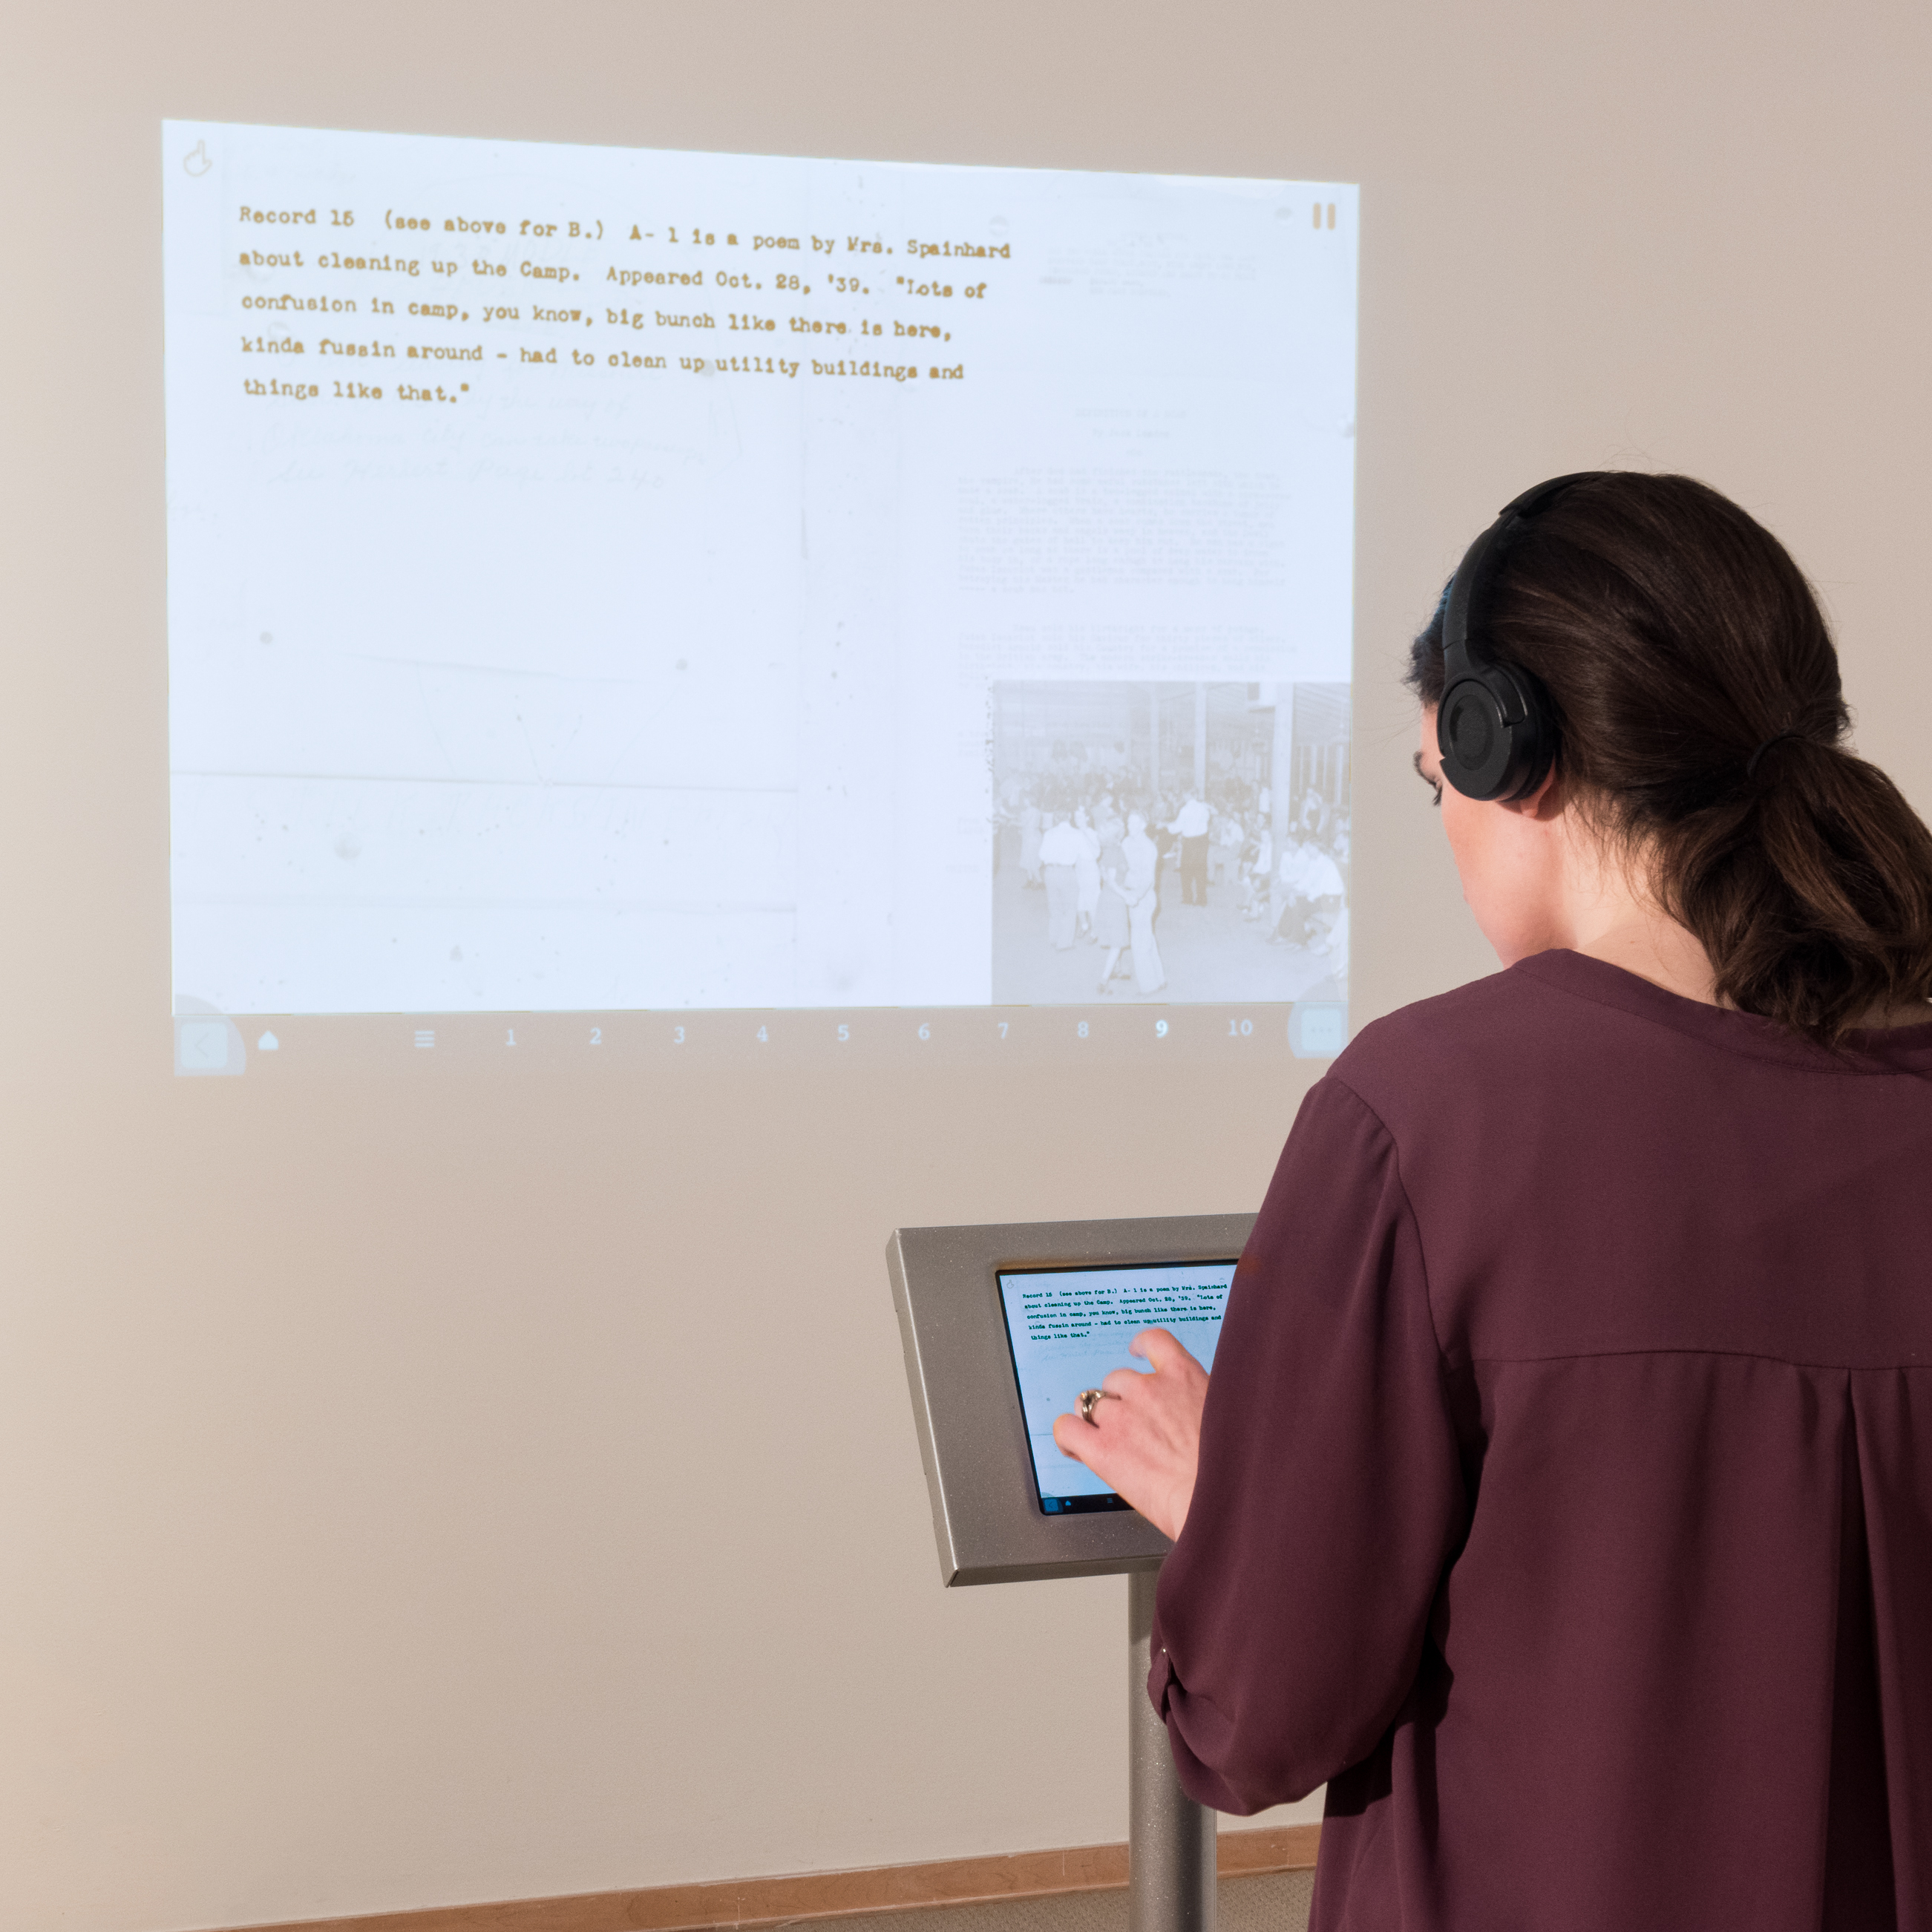 A woman touches a ipad in a stand to control a projected display